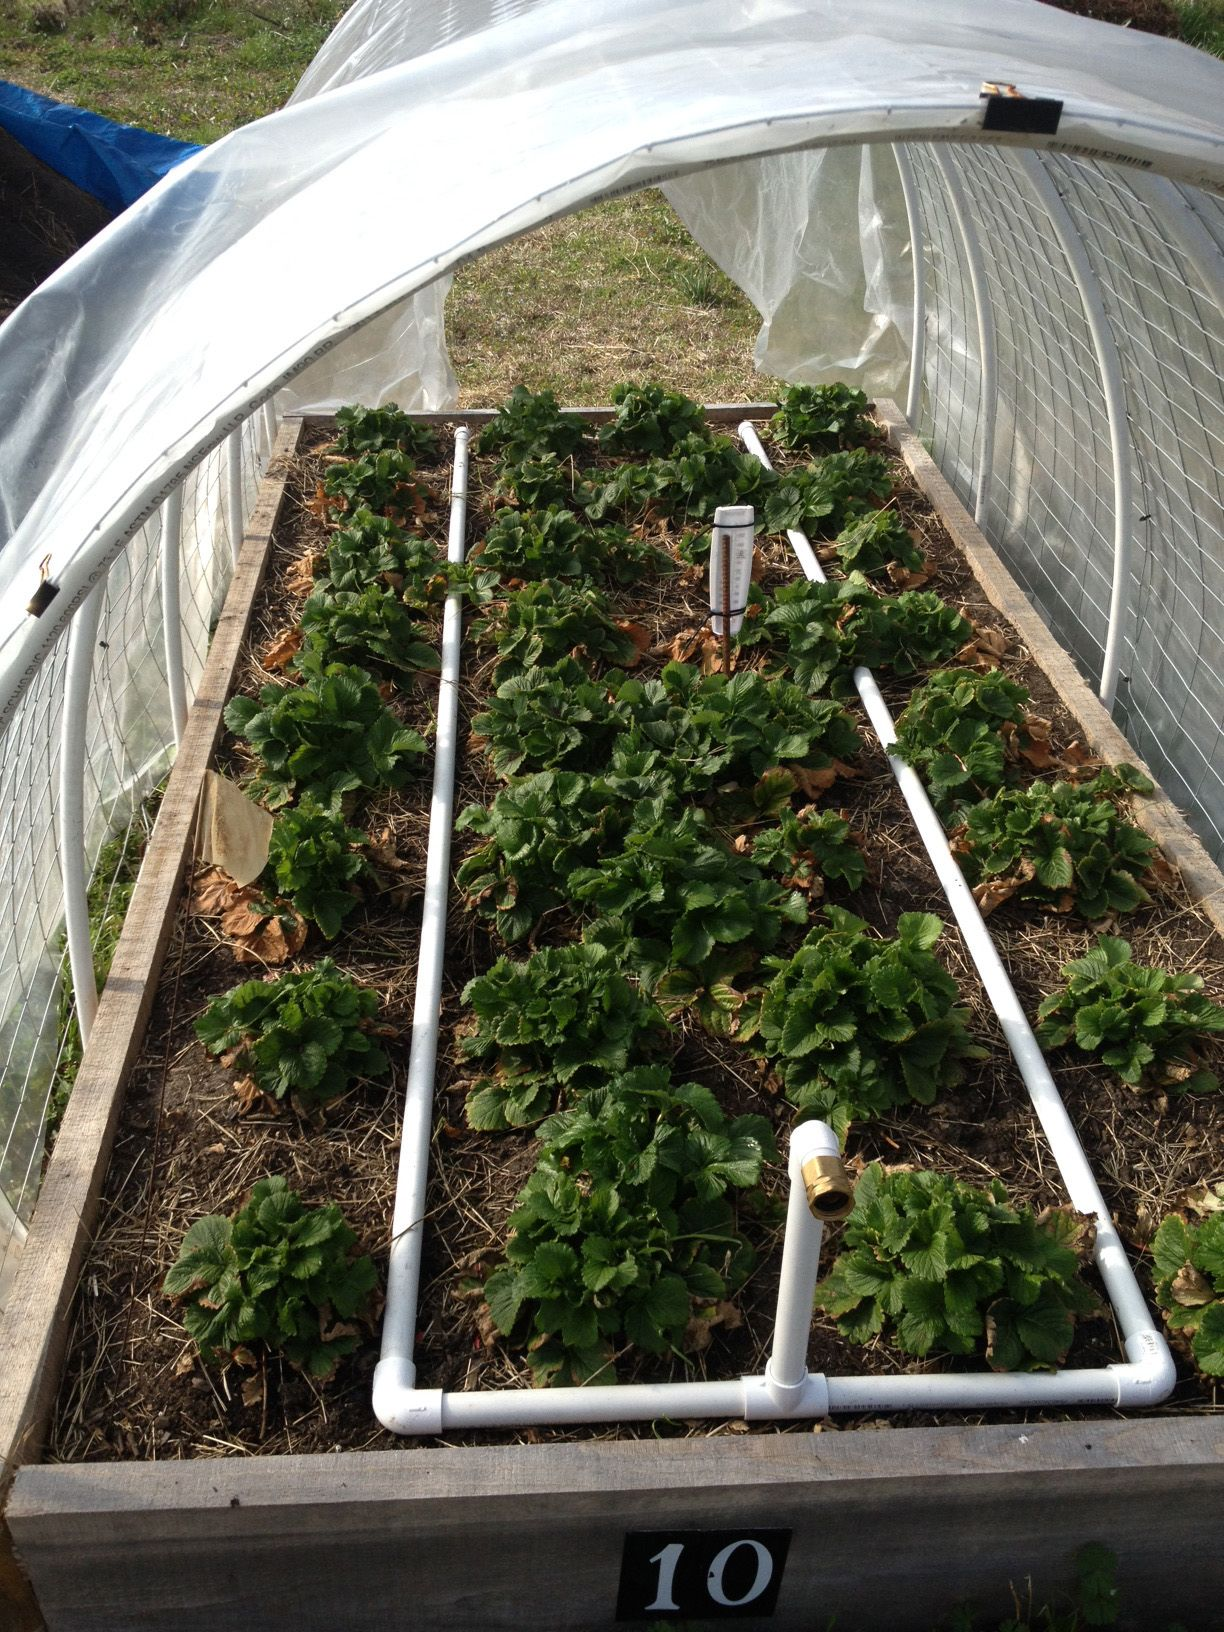 This homemade irrigation system uses inch pvc pipe